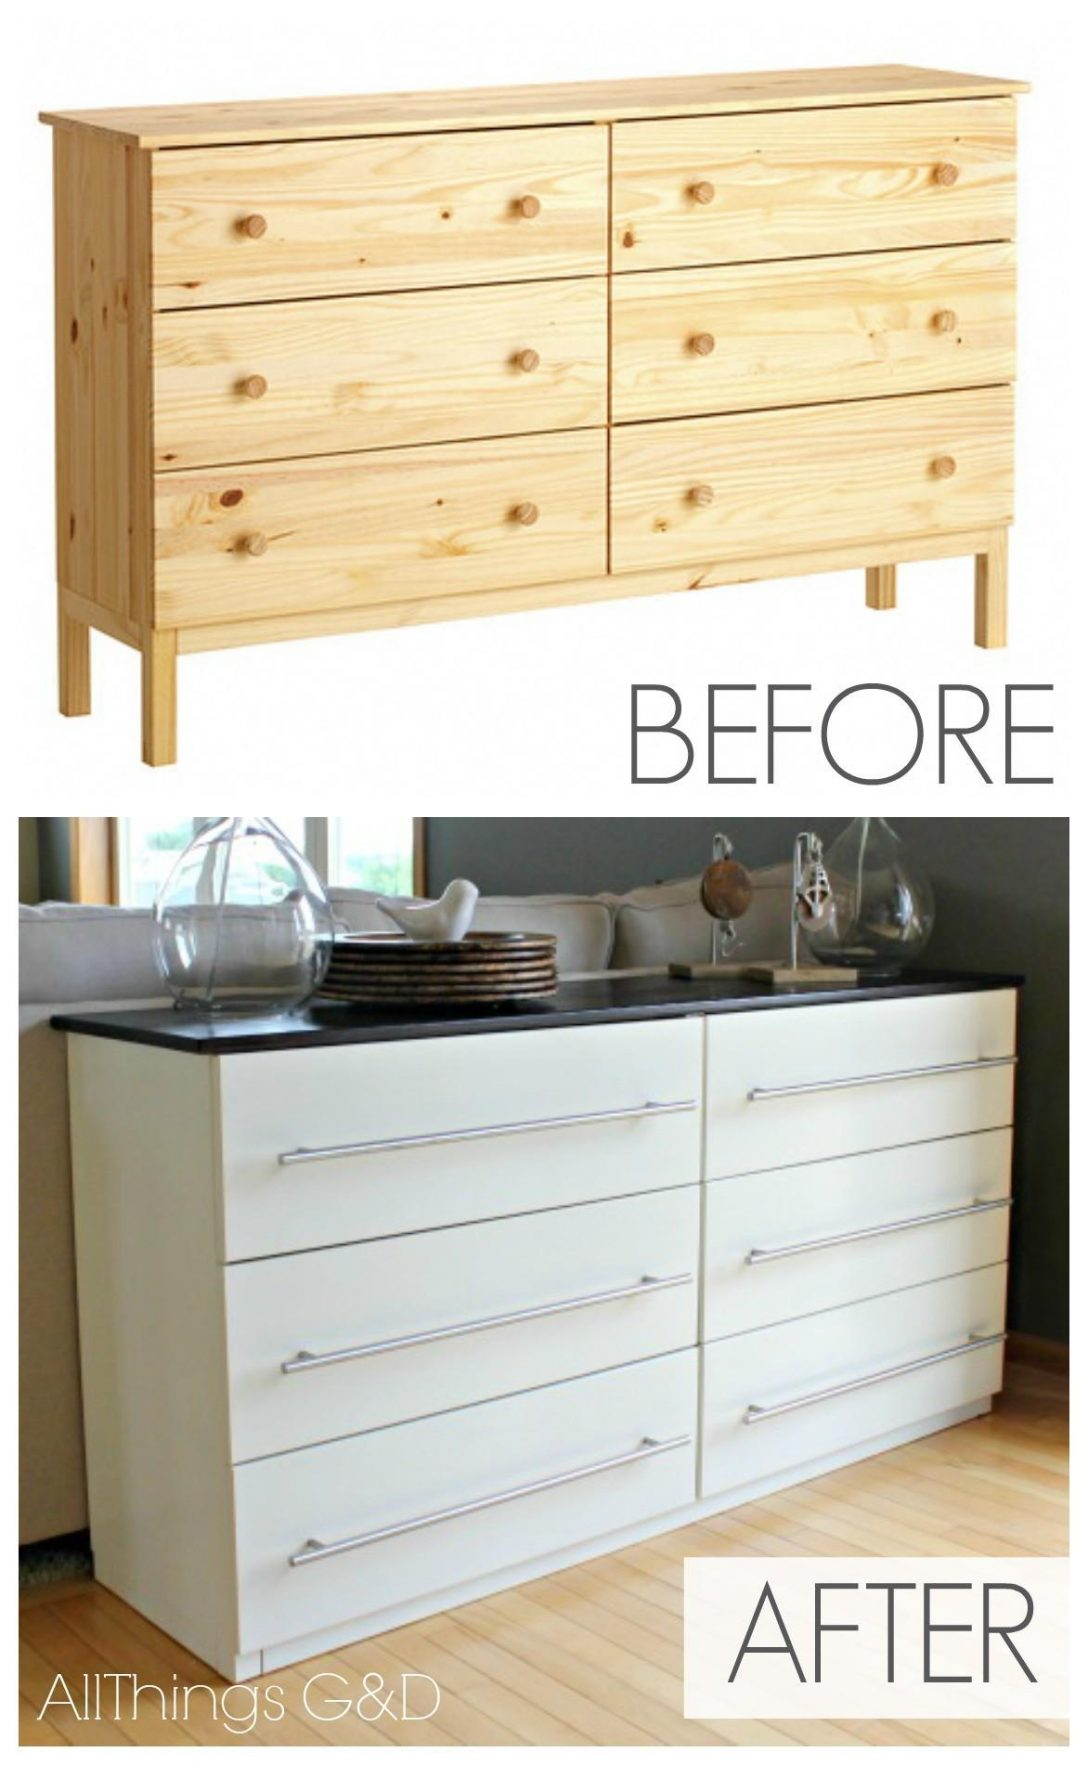 Large Size of Extremely Beautiful Ikea Sideboards And Dressers Hacks That Are Sofa Mit Schlaffunktion Küche Kosten Sideboard Arbeitsplatte Betten 160x200 Wohnzimmer Kaufen Wohnzimmer Ikea Sideboard